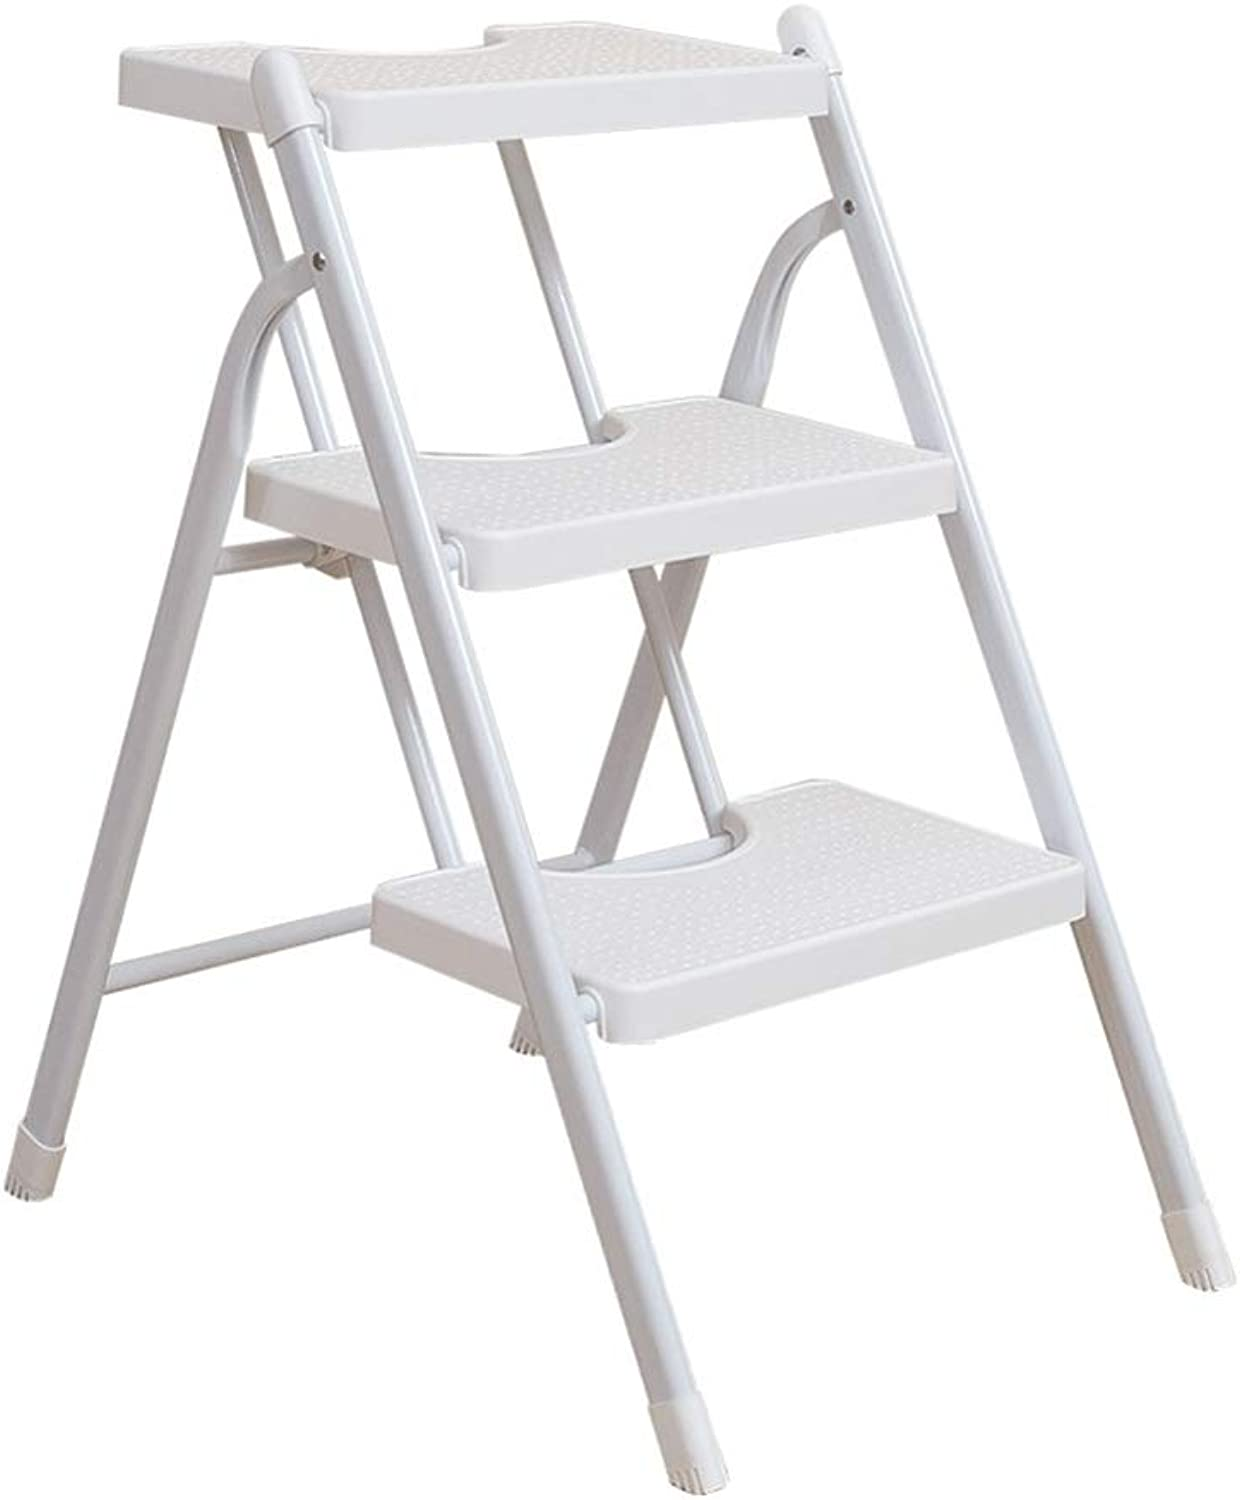 Ladders Step Stool, 3 Steps Stool Ladder Dual Purpose PP Plastic Pedal Multifunction Foldable Household Change shoes Ascending Ladder (color   White)